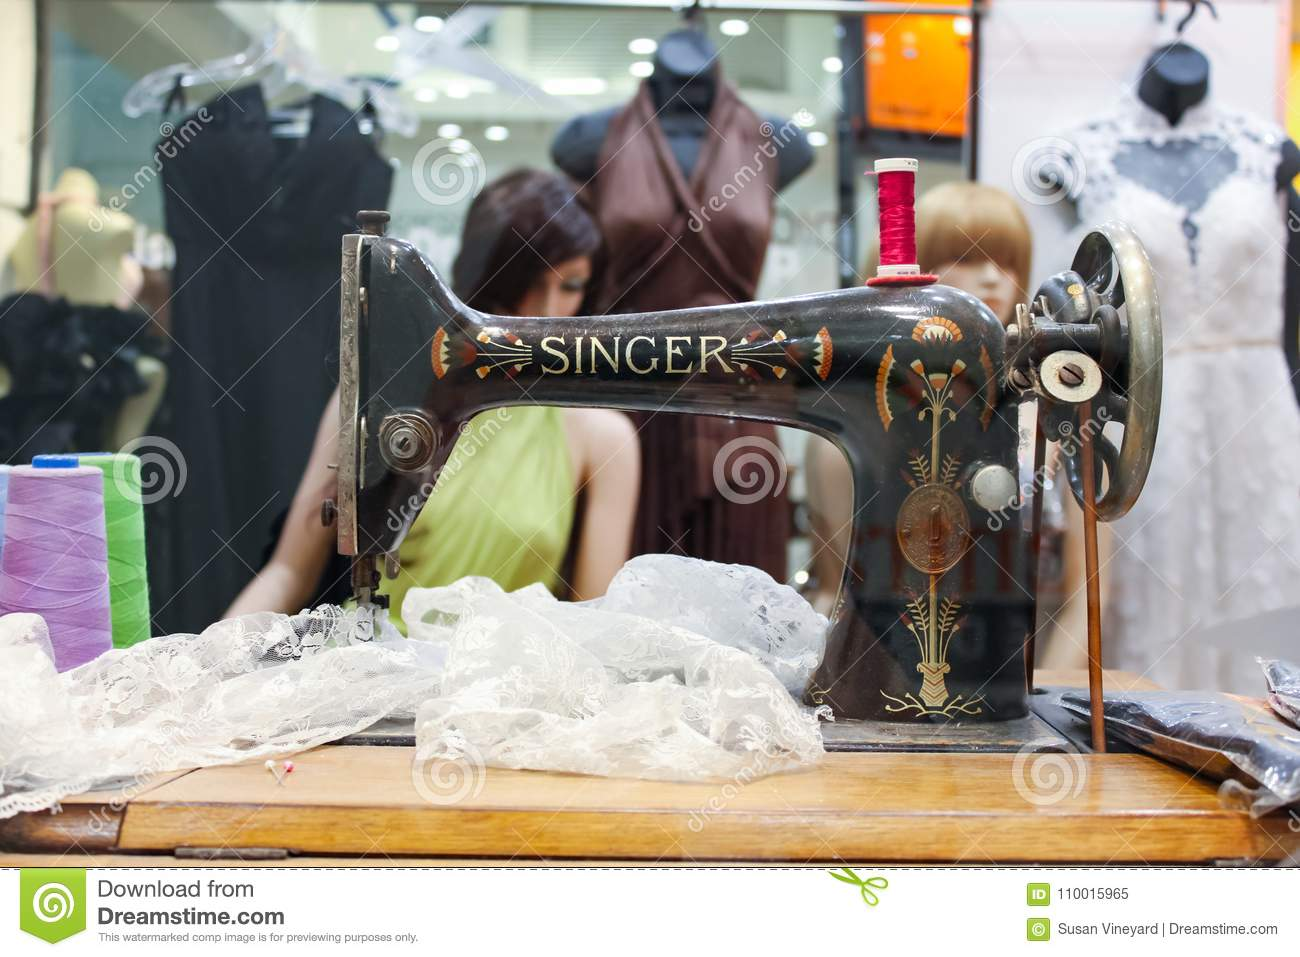 Cheap Sewing Machines Australia Tailor Shop Window Featuring Vintage Singer Sewing Machine With